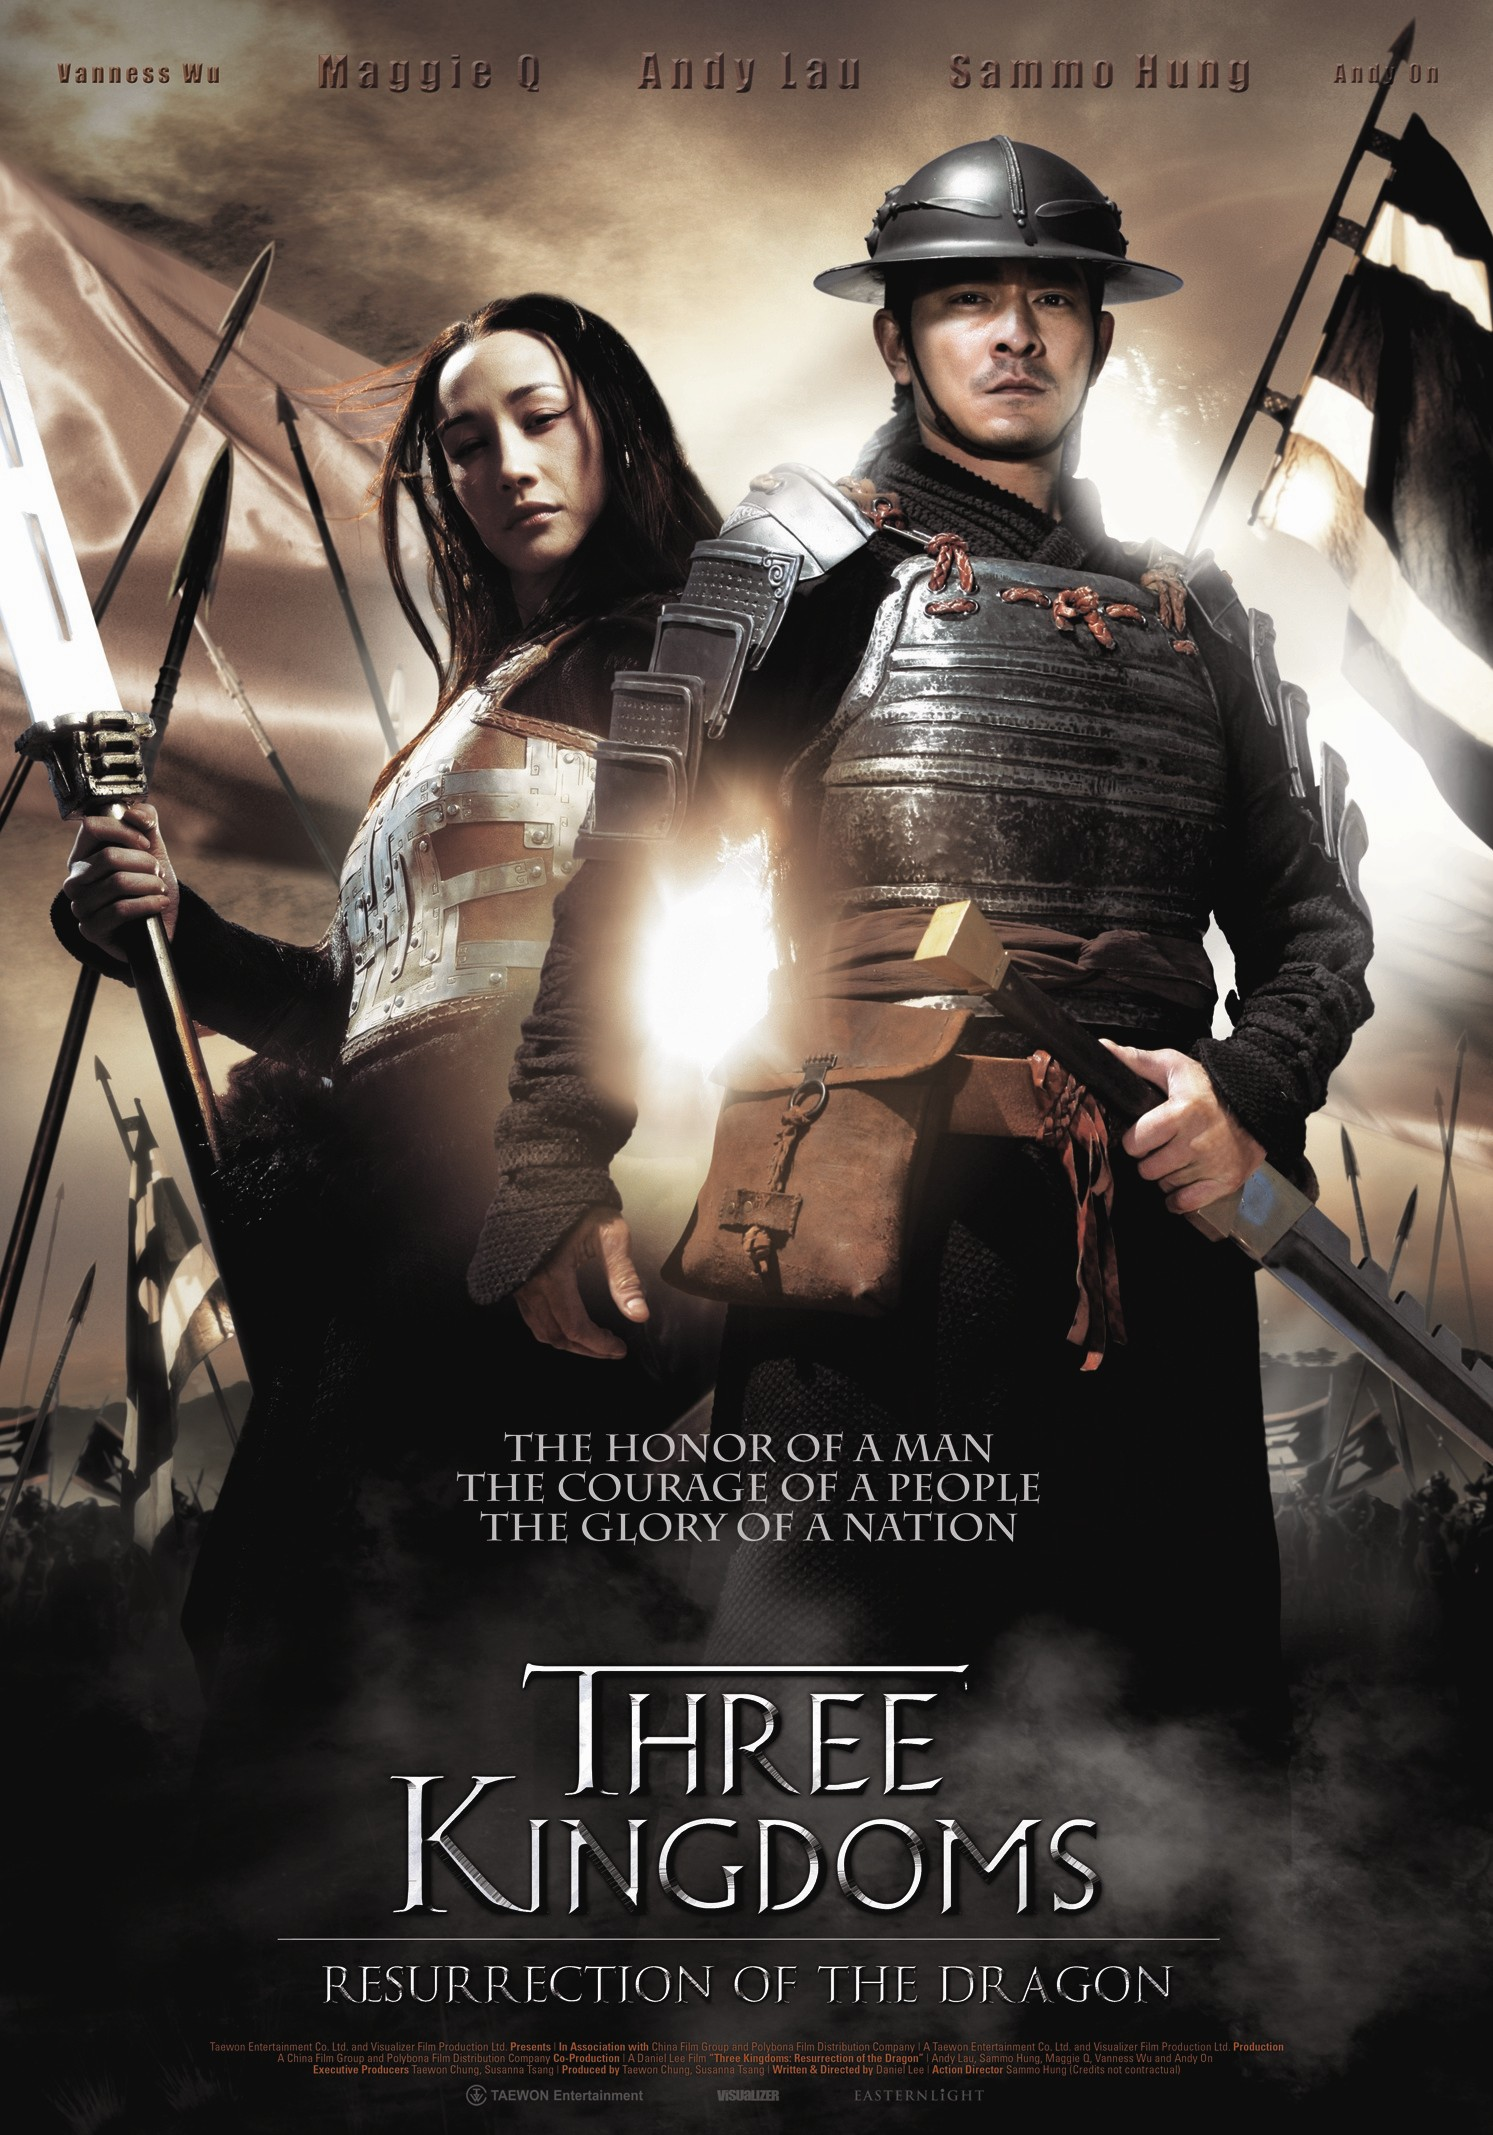 THREE KINGDOMS: RESURRECTION OF THE DRAGON (2008) review ...